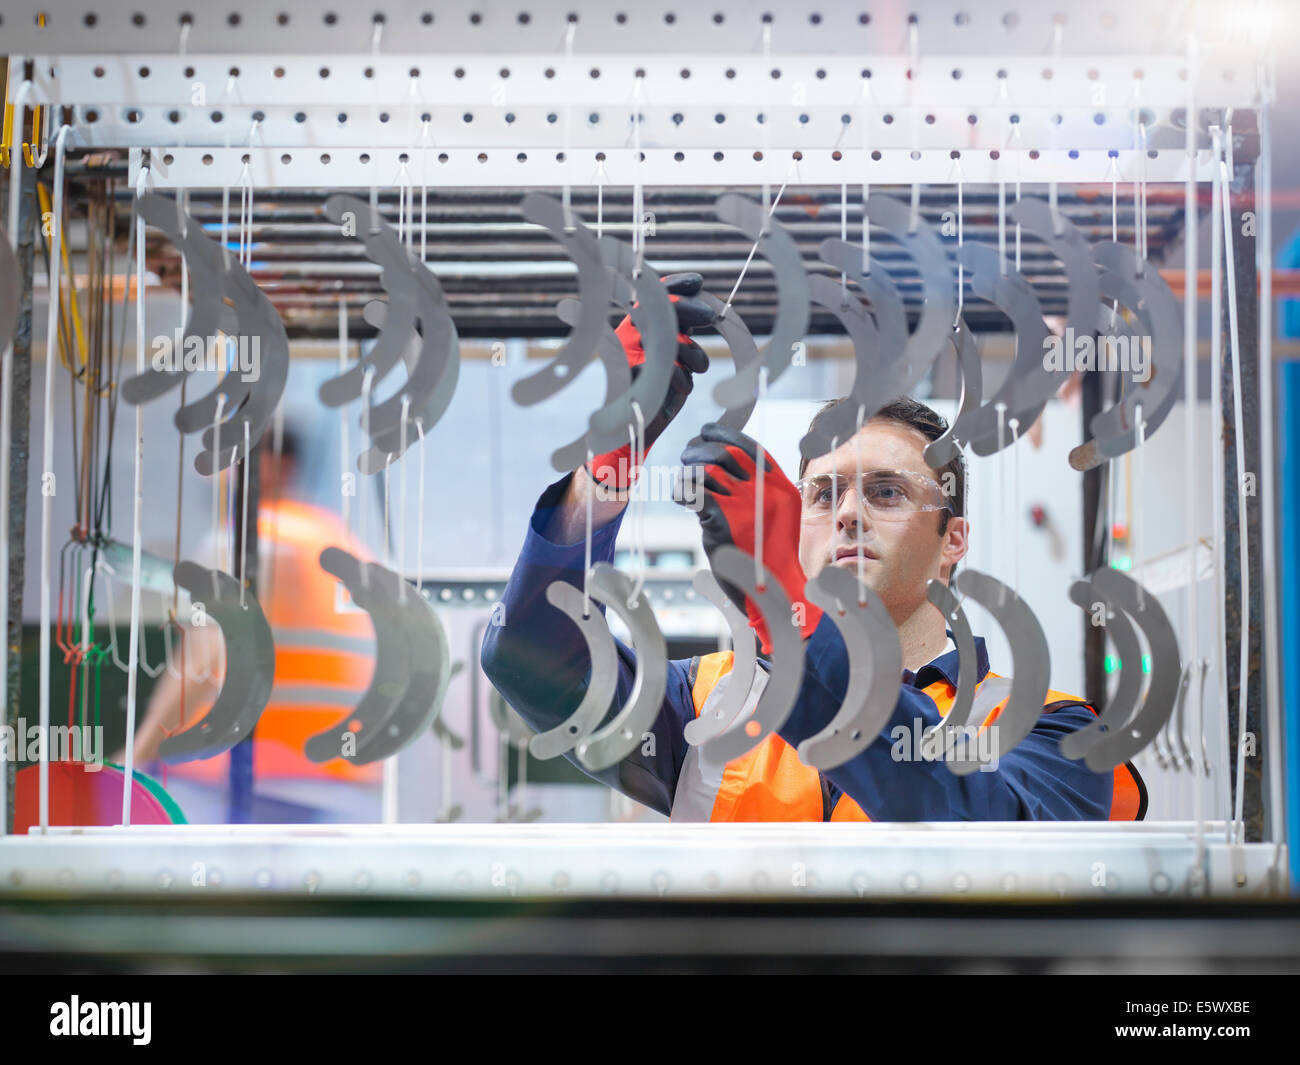 Worker arranging metal parts for paint spraying in sheet metal factory - Stock Image